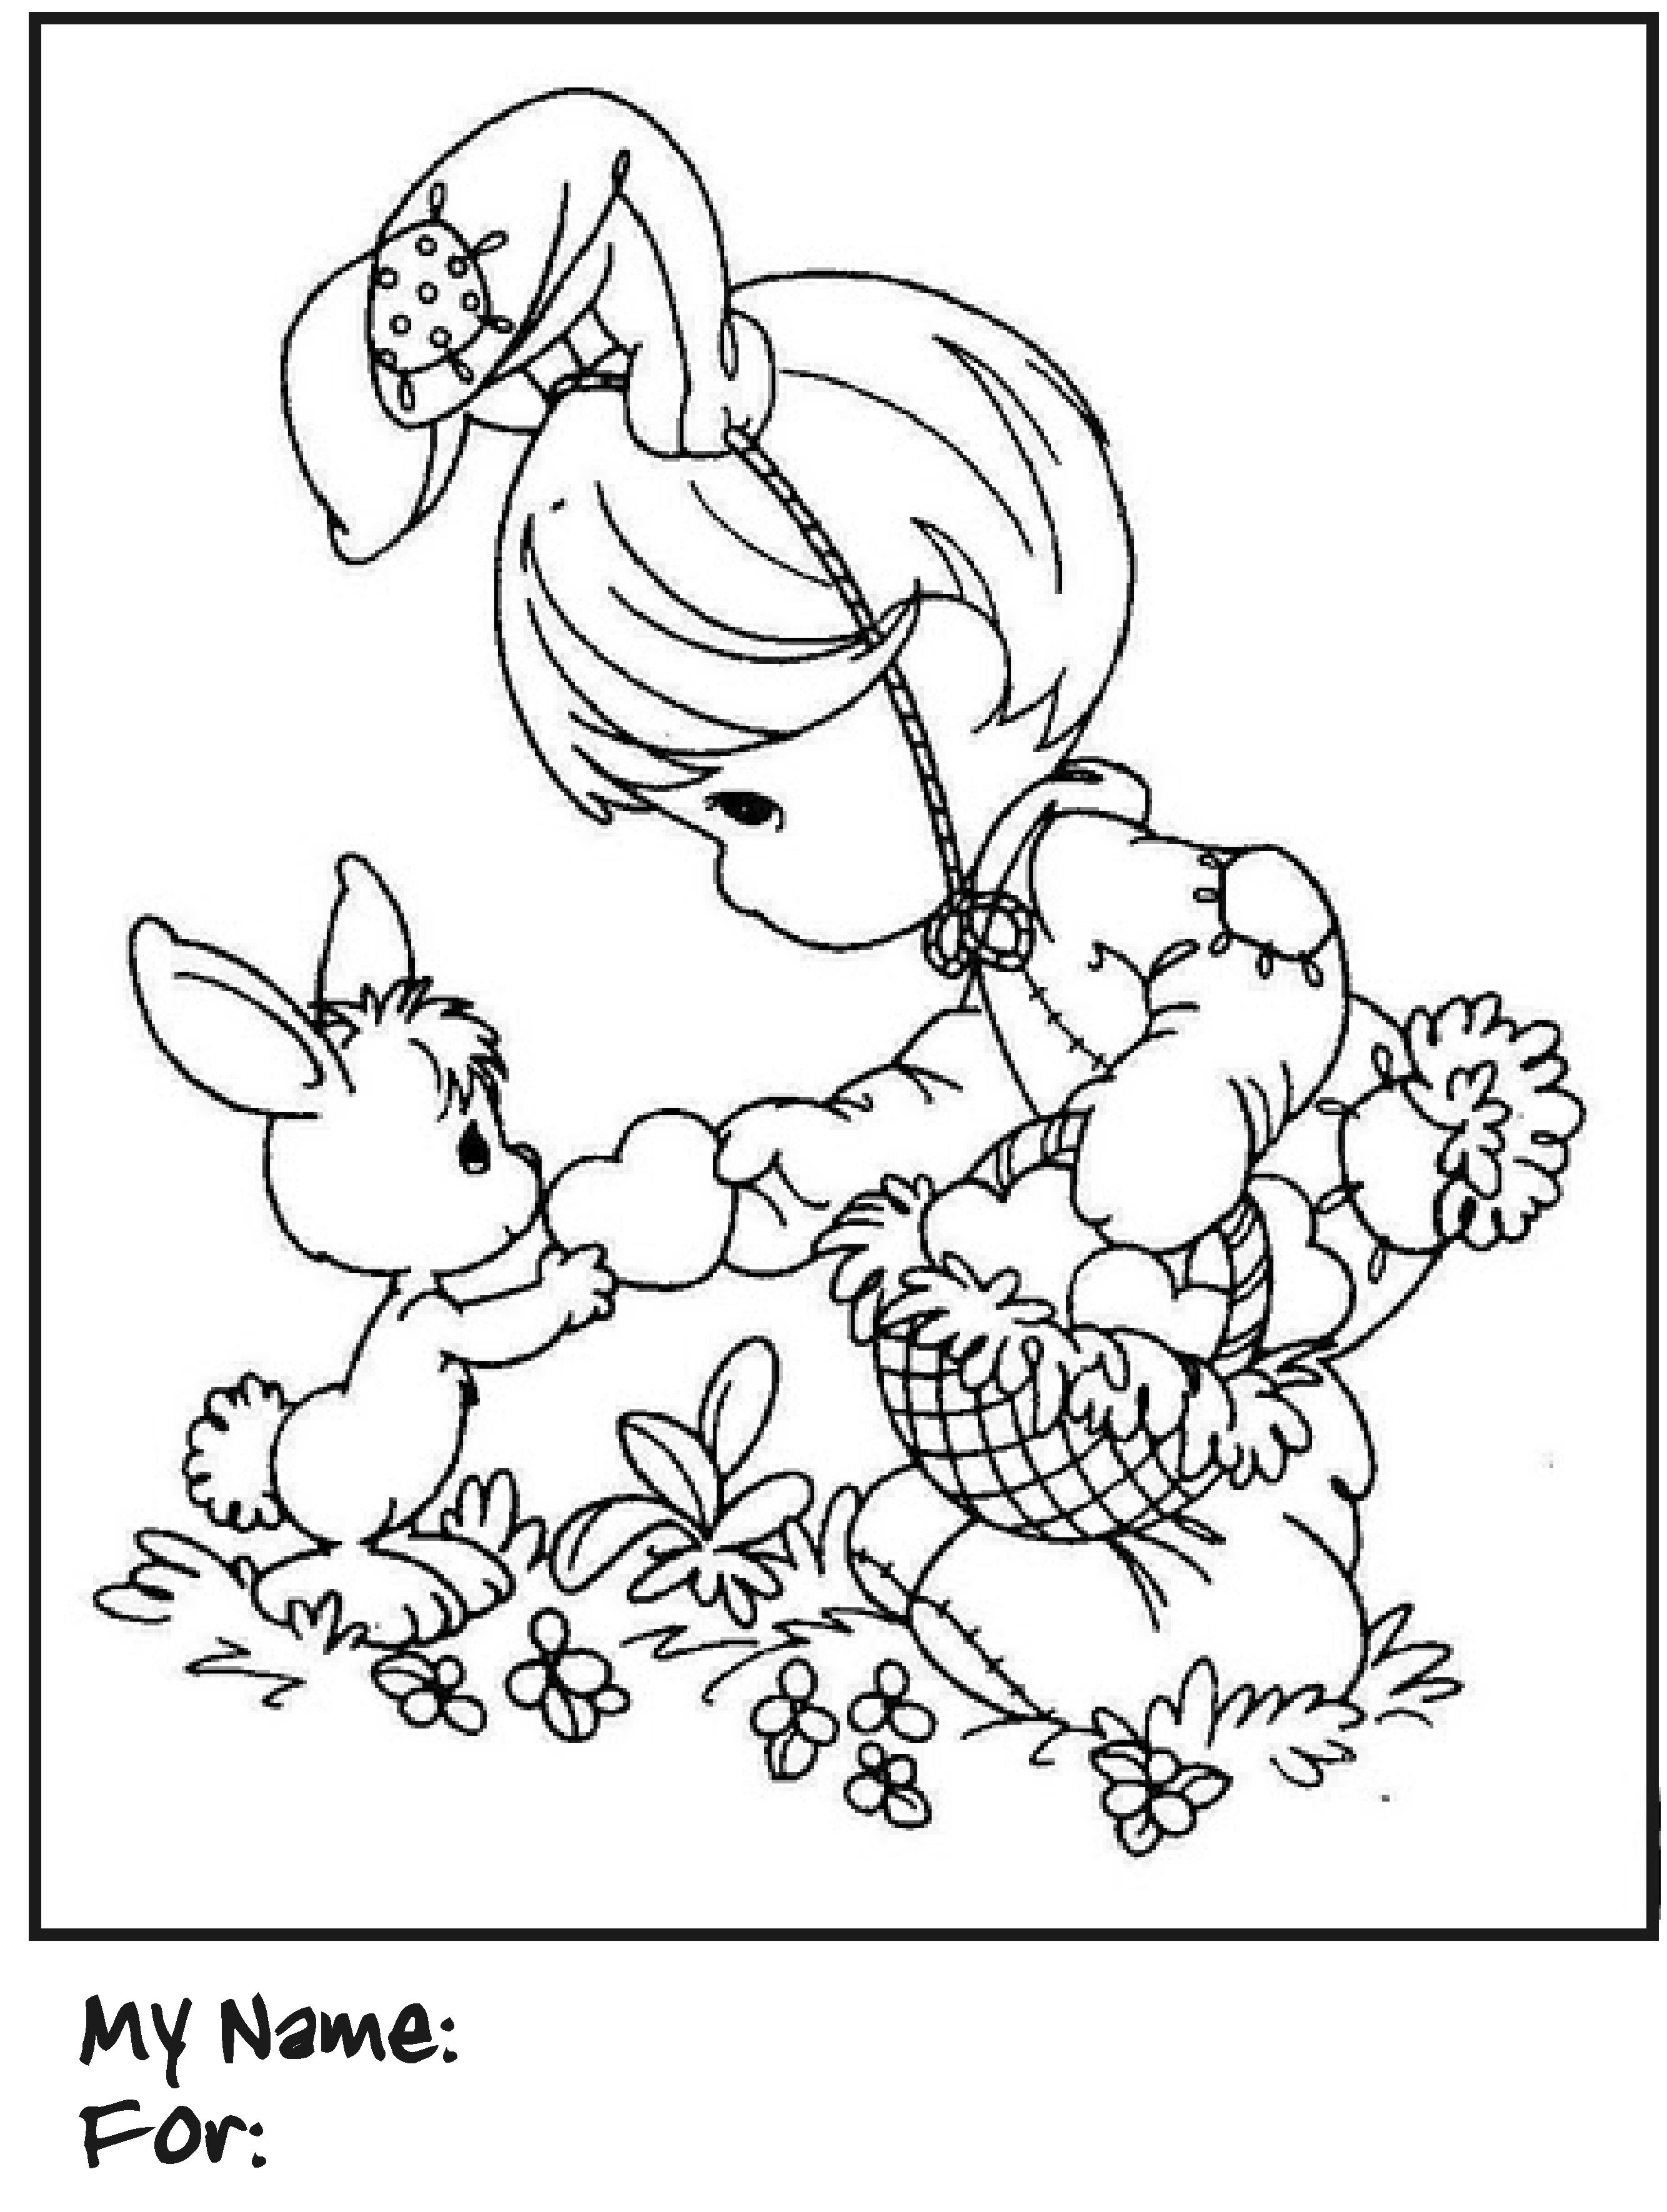 Image Detail For Have Fun Coloring This Precious Moments Easter Bunny Coloring Page Precious Moments Coloring Pages Coloring Pages Easter Coloring Pages